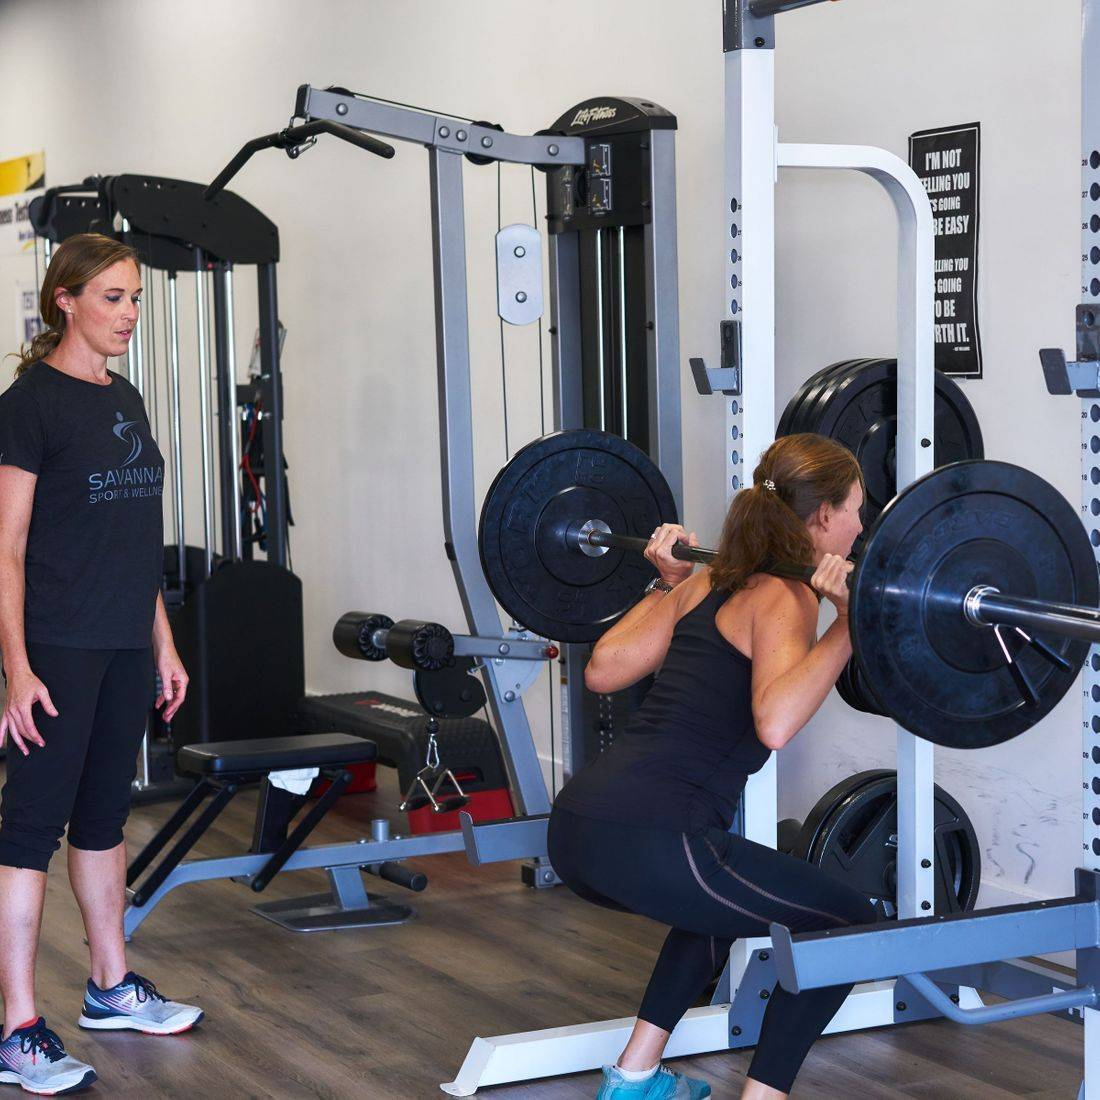 personal training studio savannah ga, personal training savannah, group workout savannah ga